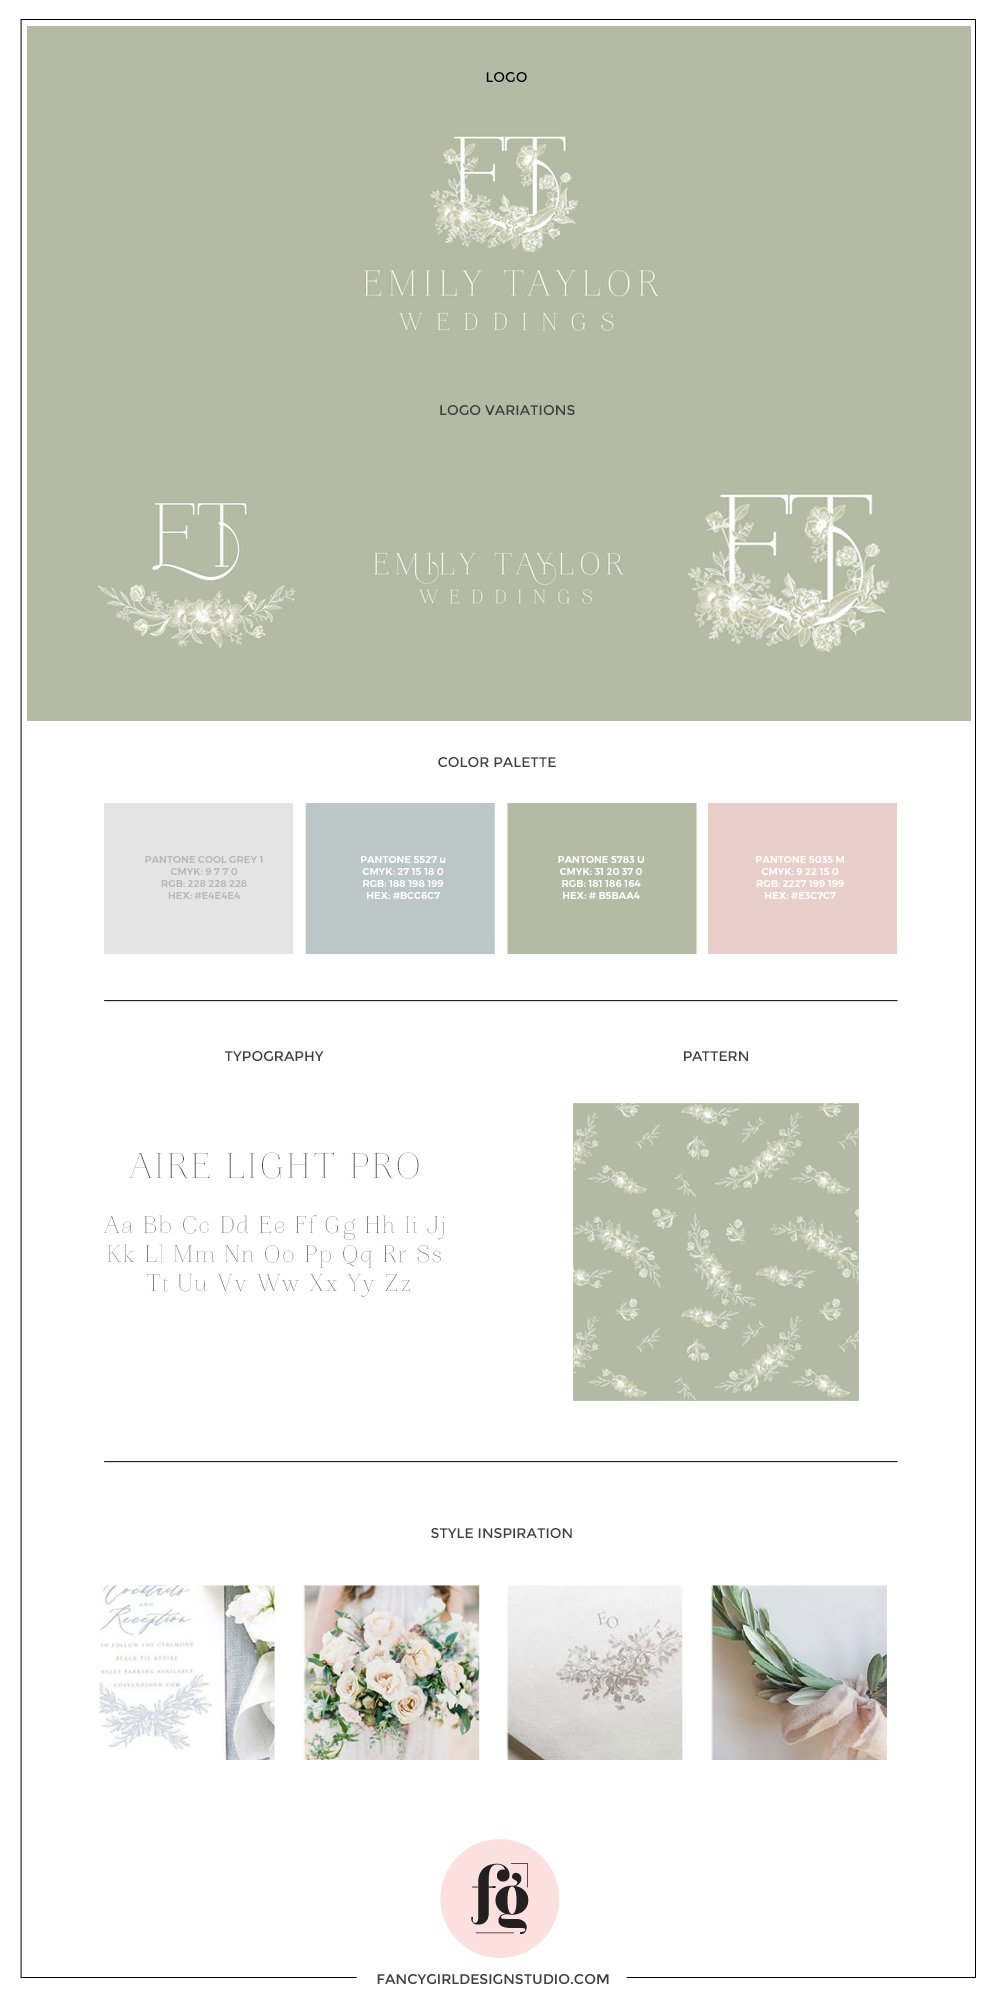 Brand guide for Emily Taylor Weddings by Fancy Girl Design Studio